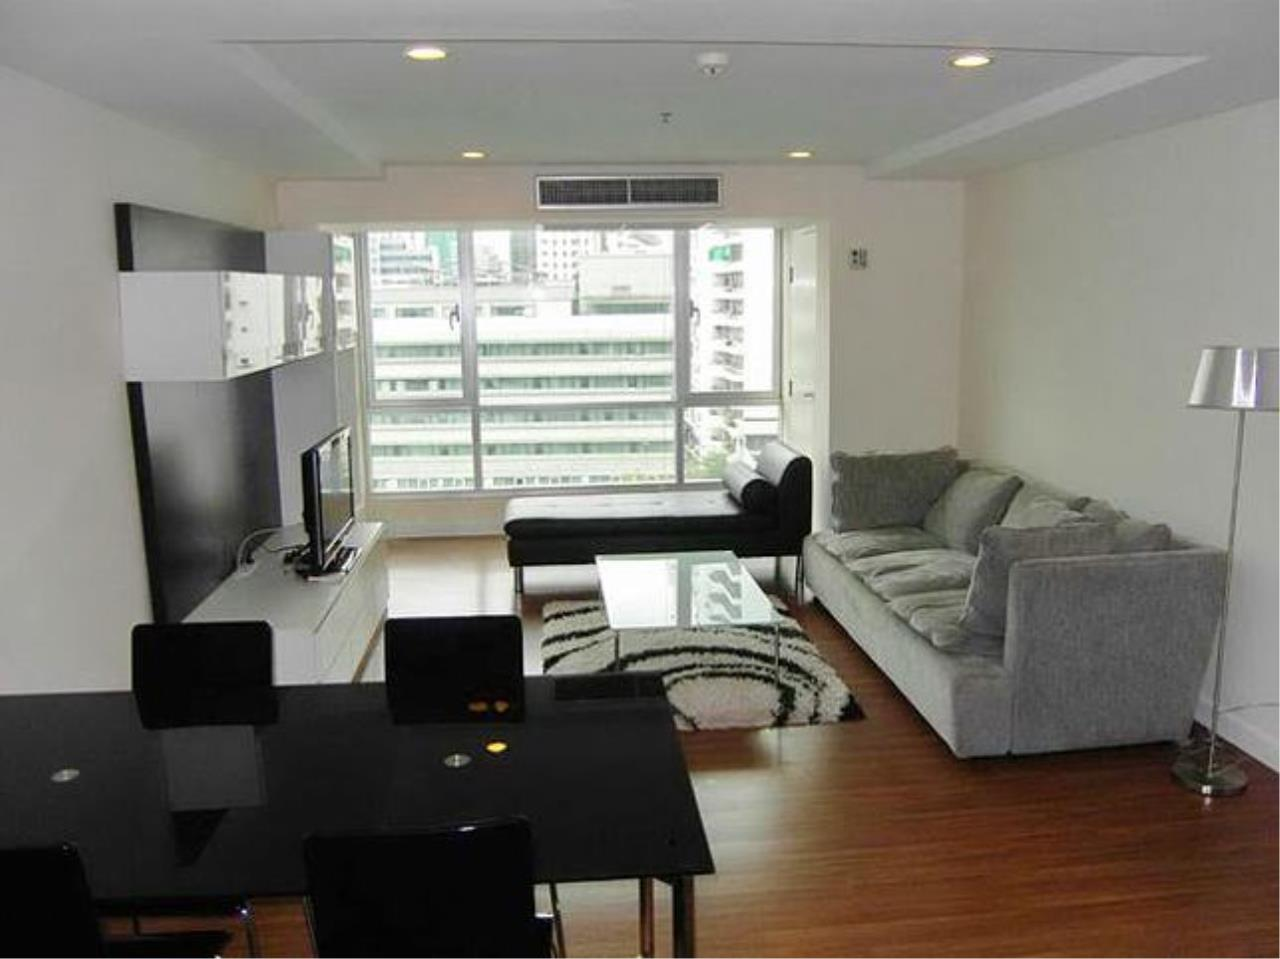 Quality Life Property Agency's **** For Rent **** At The Trendy Condominium , Many Units Available Here 2